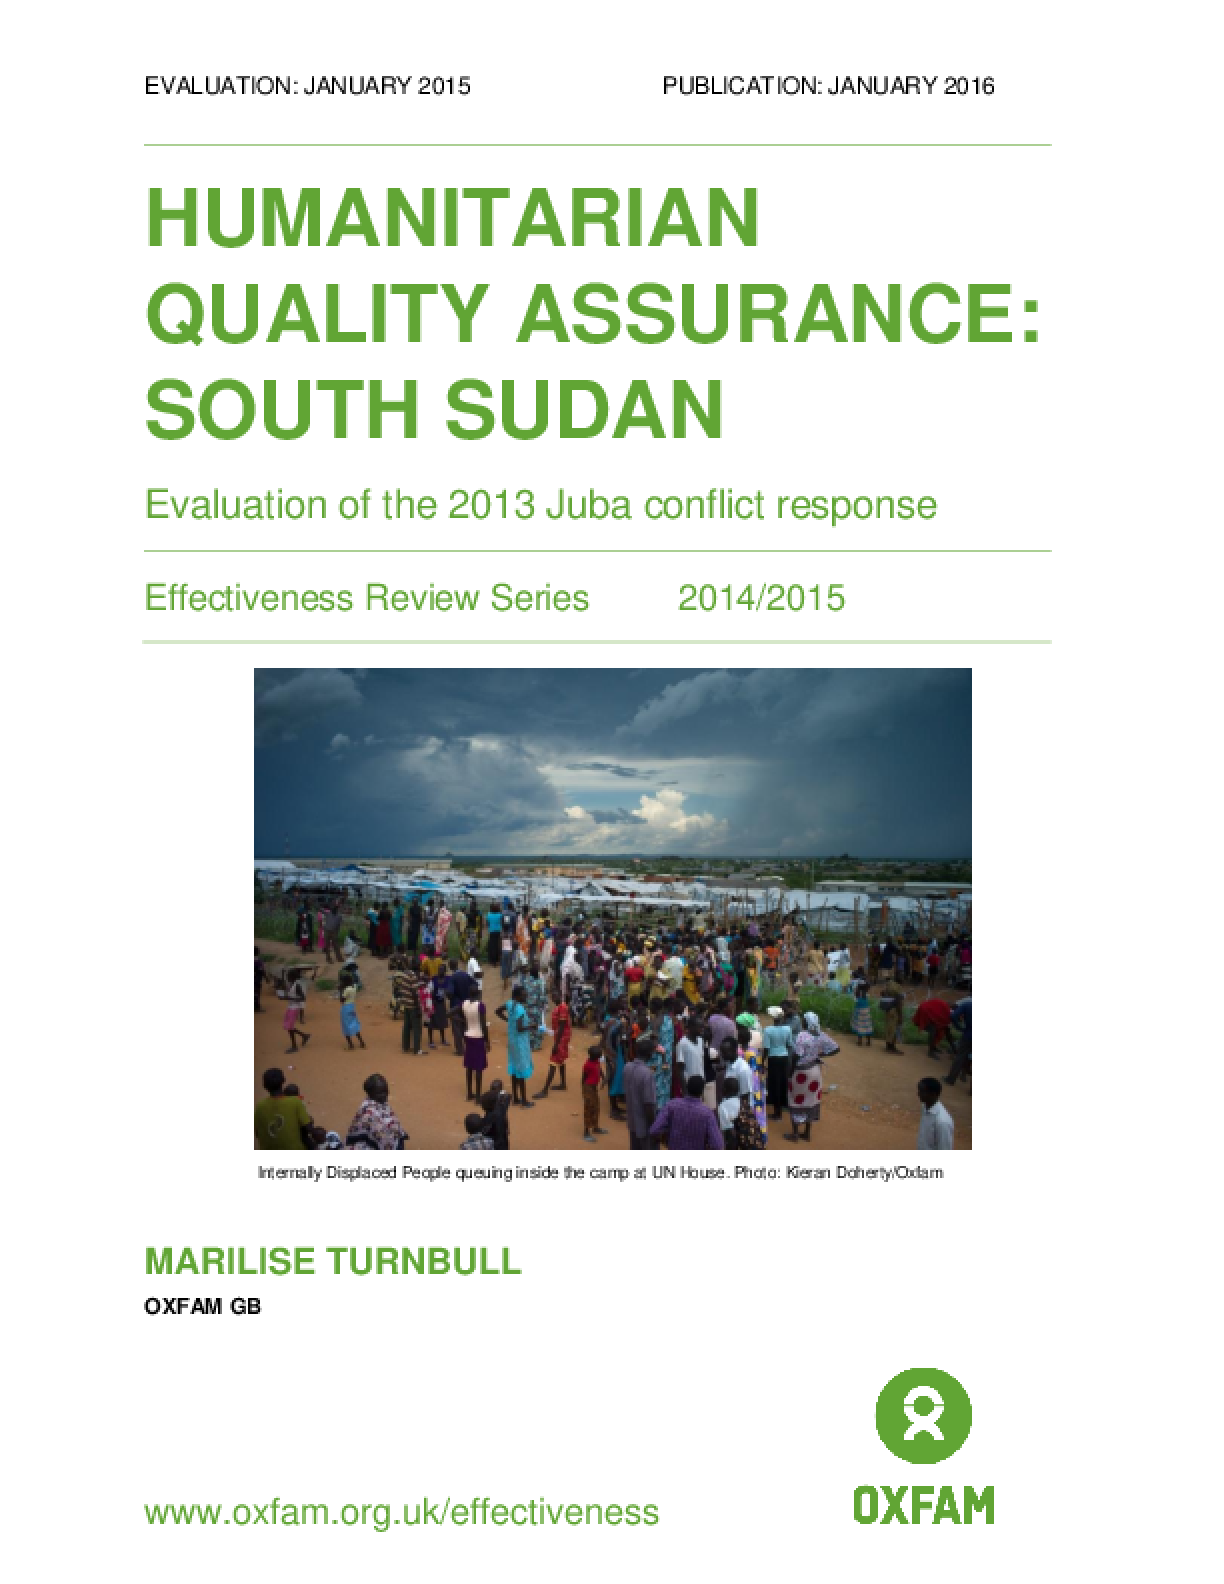 Humanitarian Quality Assurance - South Sudan: Evaluation of the 2013 Juba conflict response